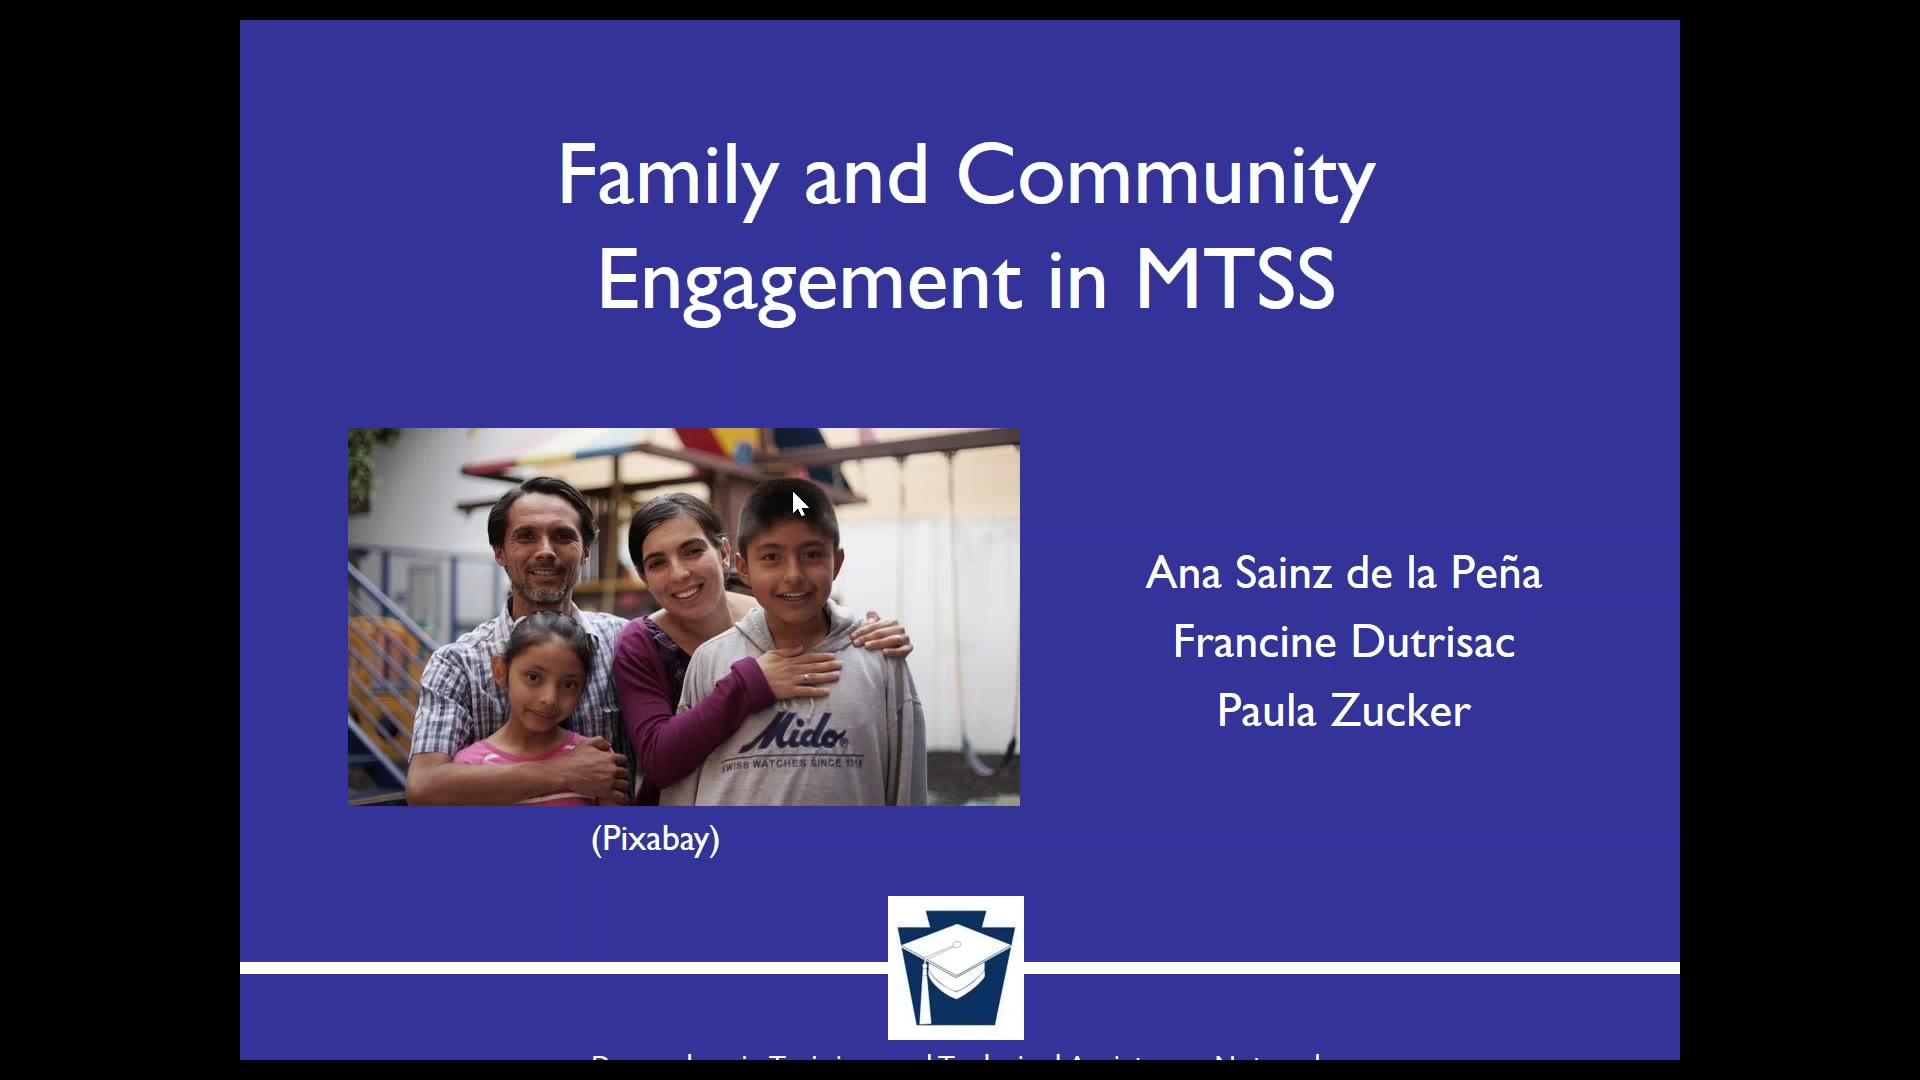 Family and Community Engagement in MTSS